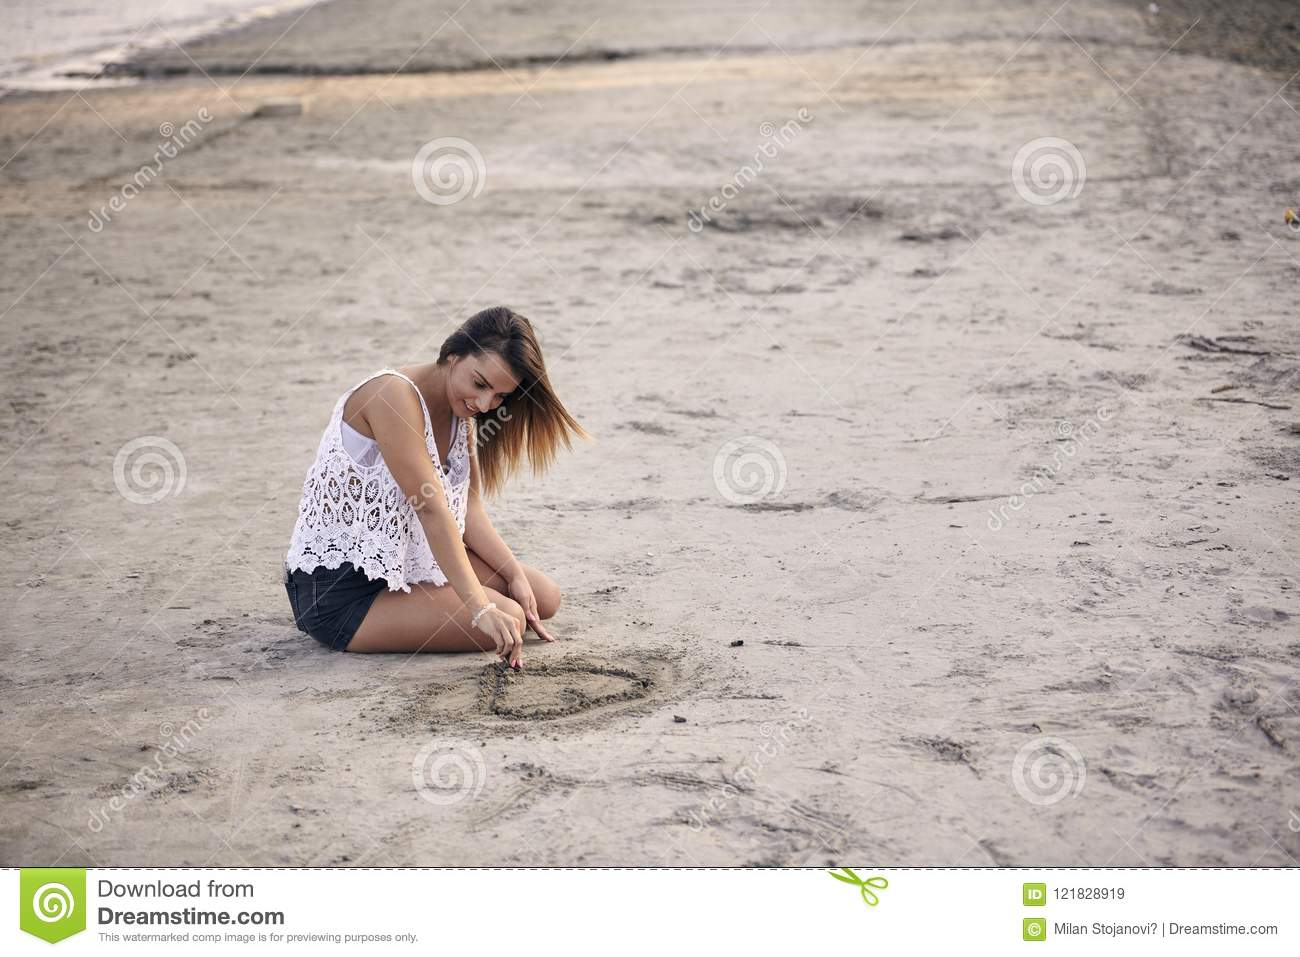 One young beautiful girl alone sitting in sand drawing with stick